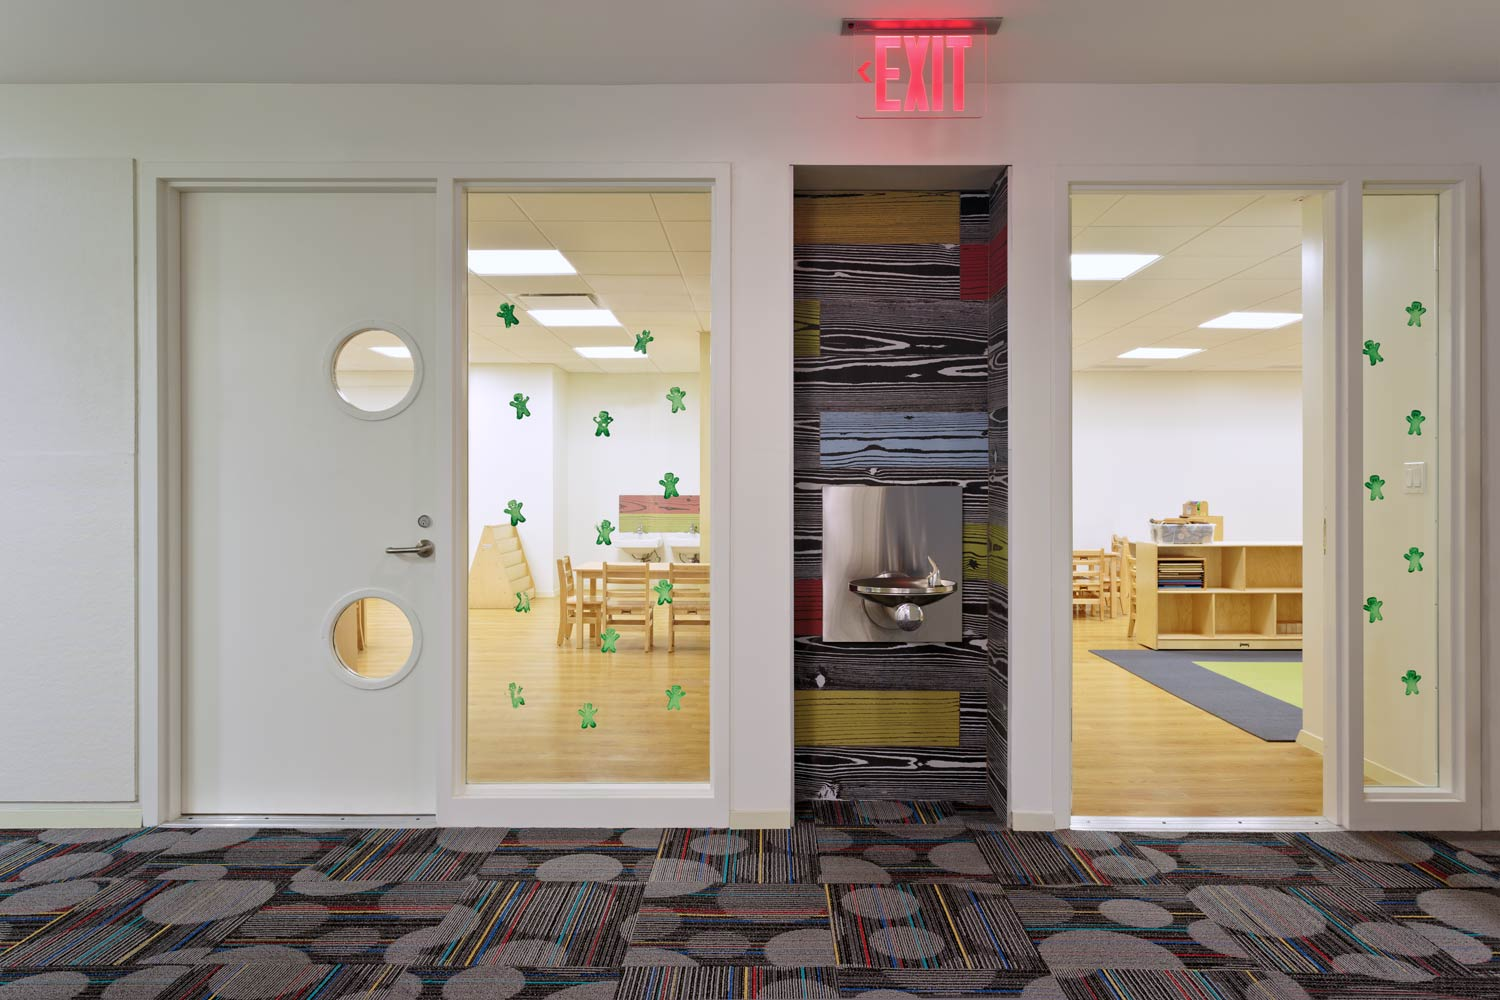 Interior glazing brings natural light into inner corridors and creates a visual connection to the classrooms.